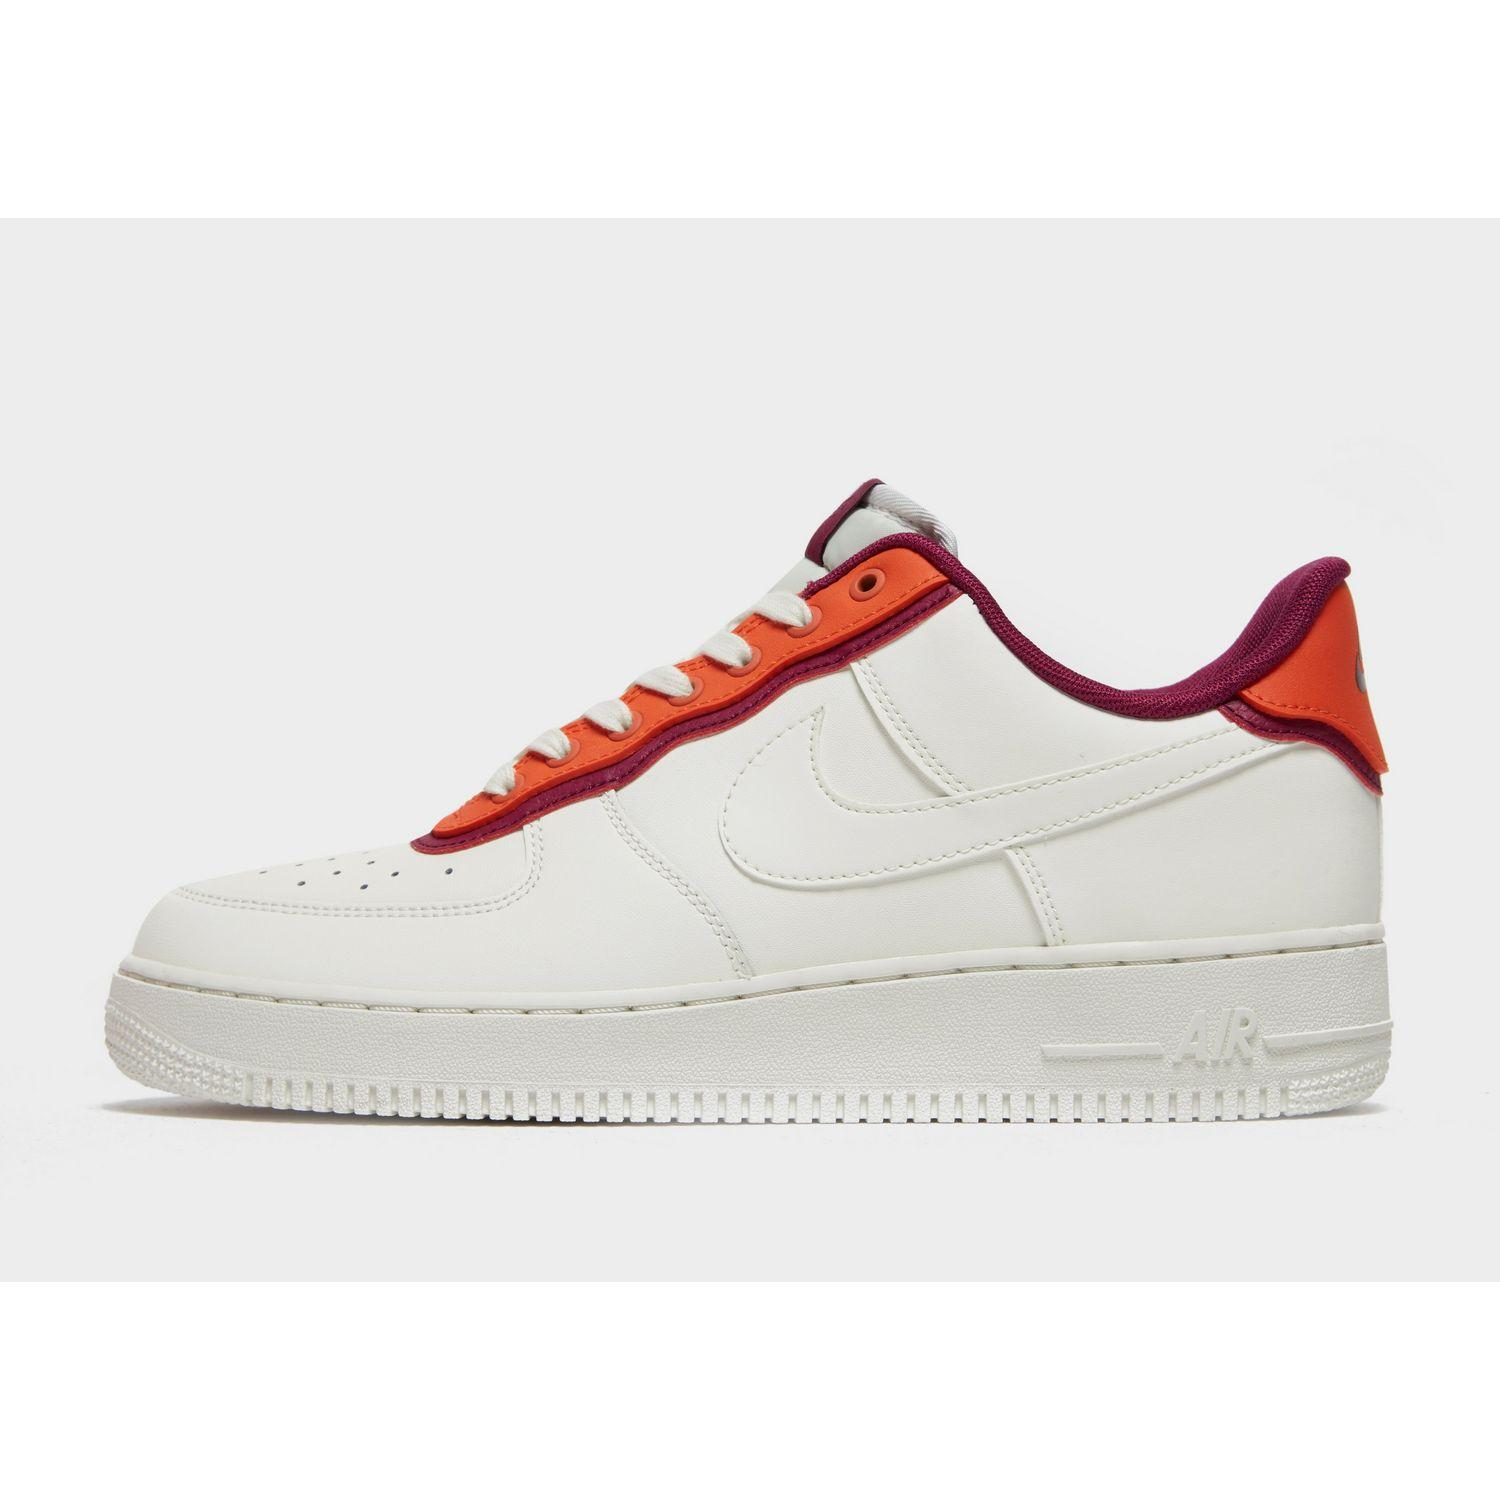 Nike Leather Air Force 1 '07 Lv8 in